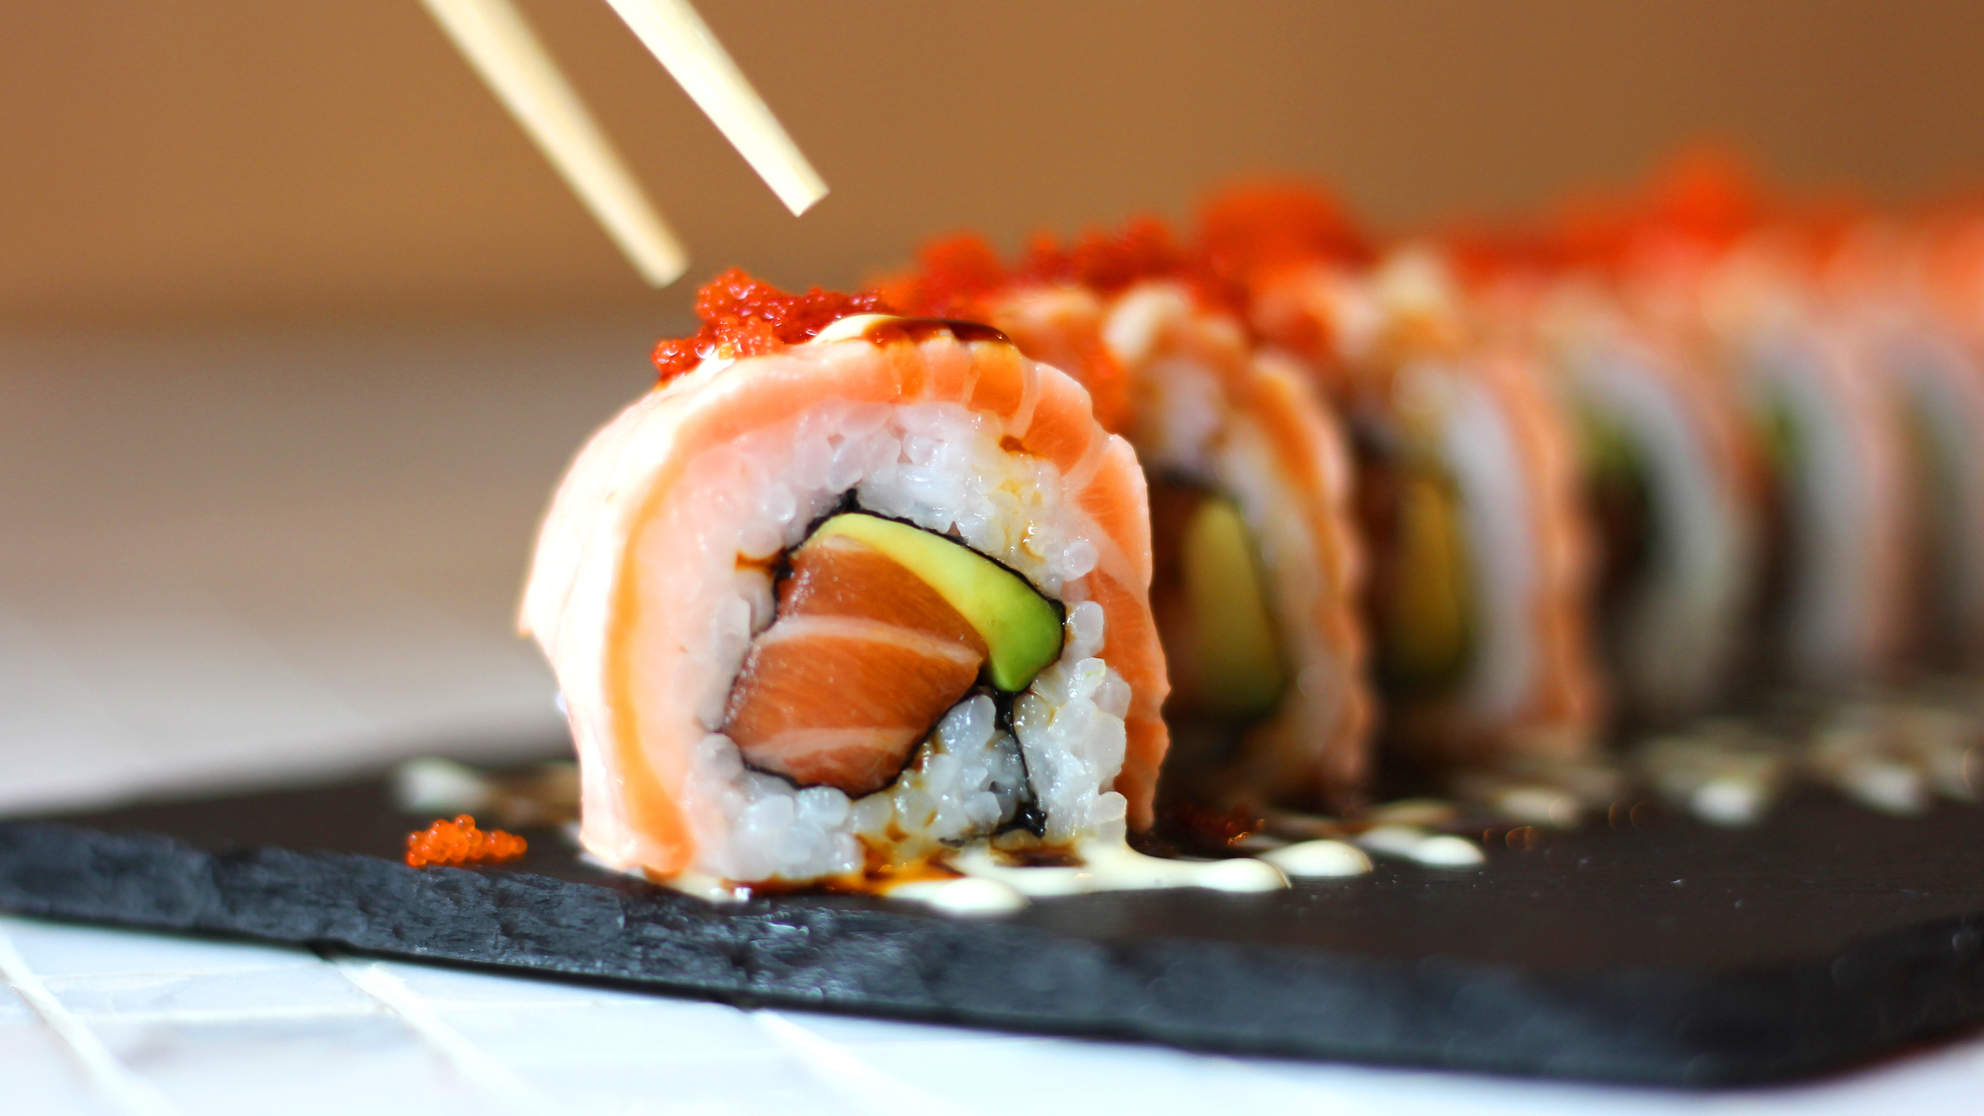 Is Sushi Healthy? Here's Everything You Need to Know